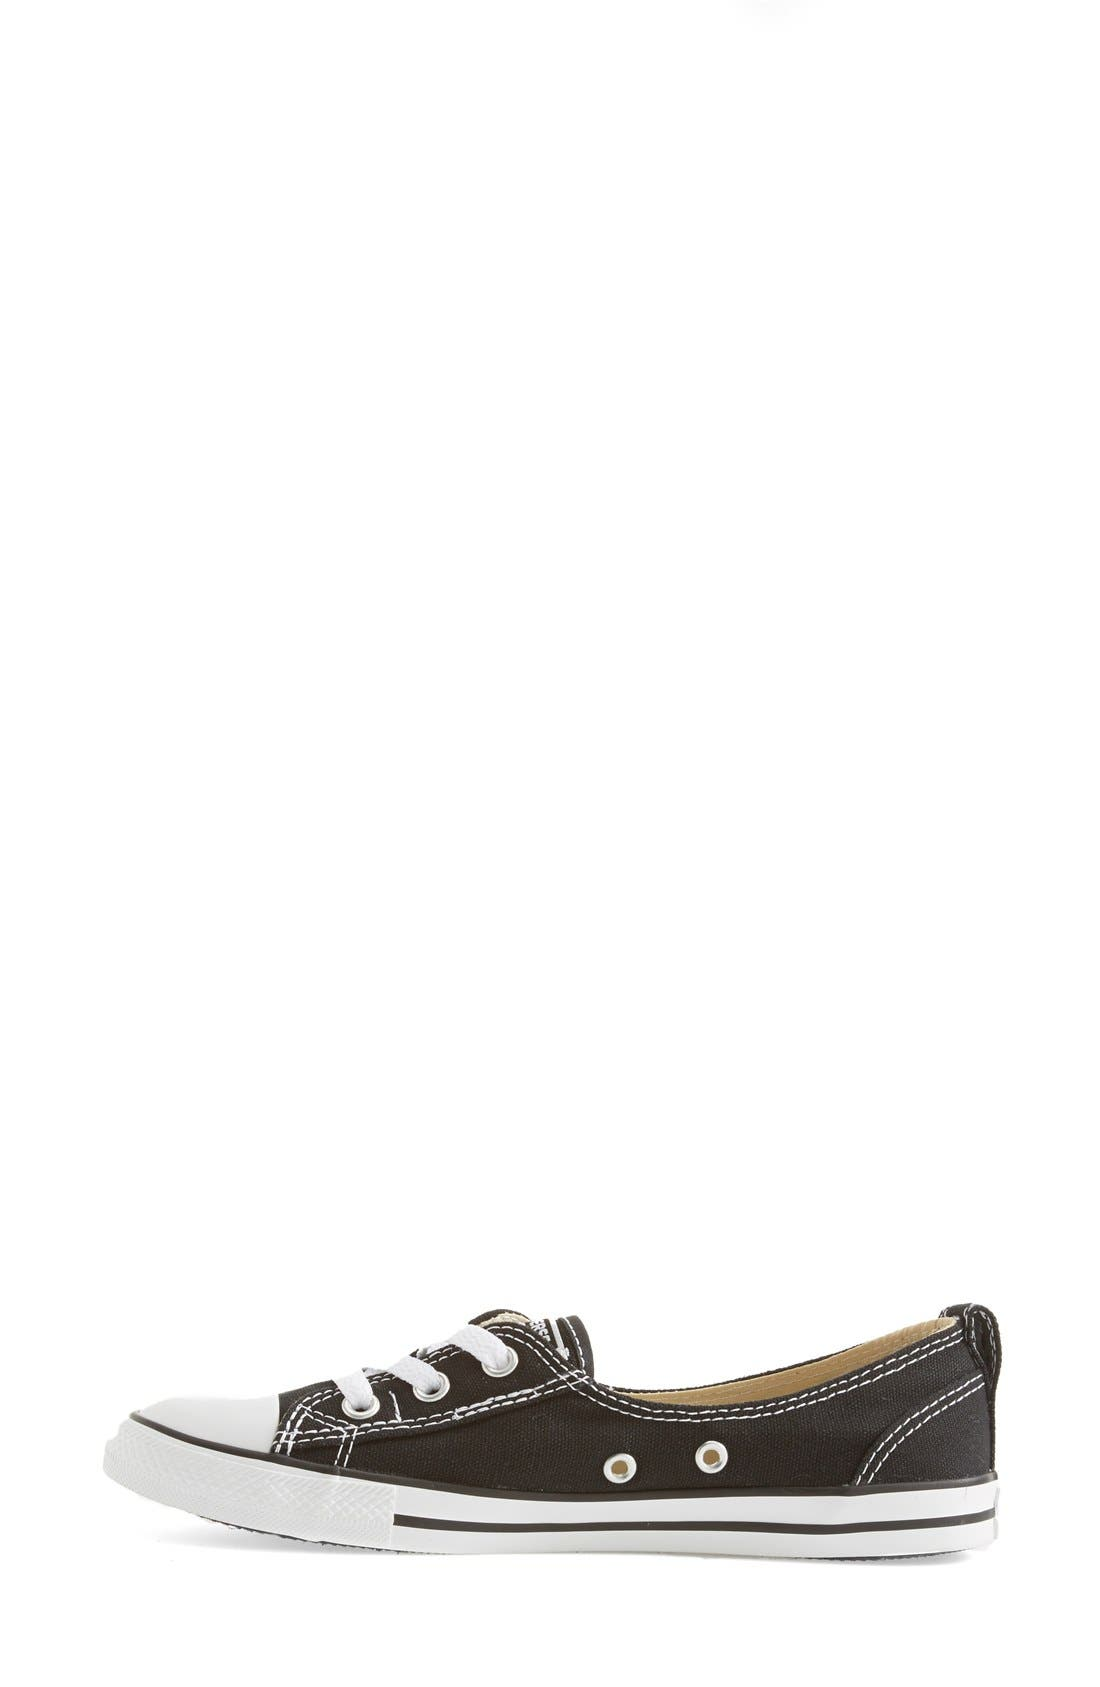 ,                             Chuck Taylor<sup>®</sup> All Star<sup>®</sup> Ballet Canvas Sneaker,                             Alternate thumbnail 4, color,                             001